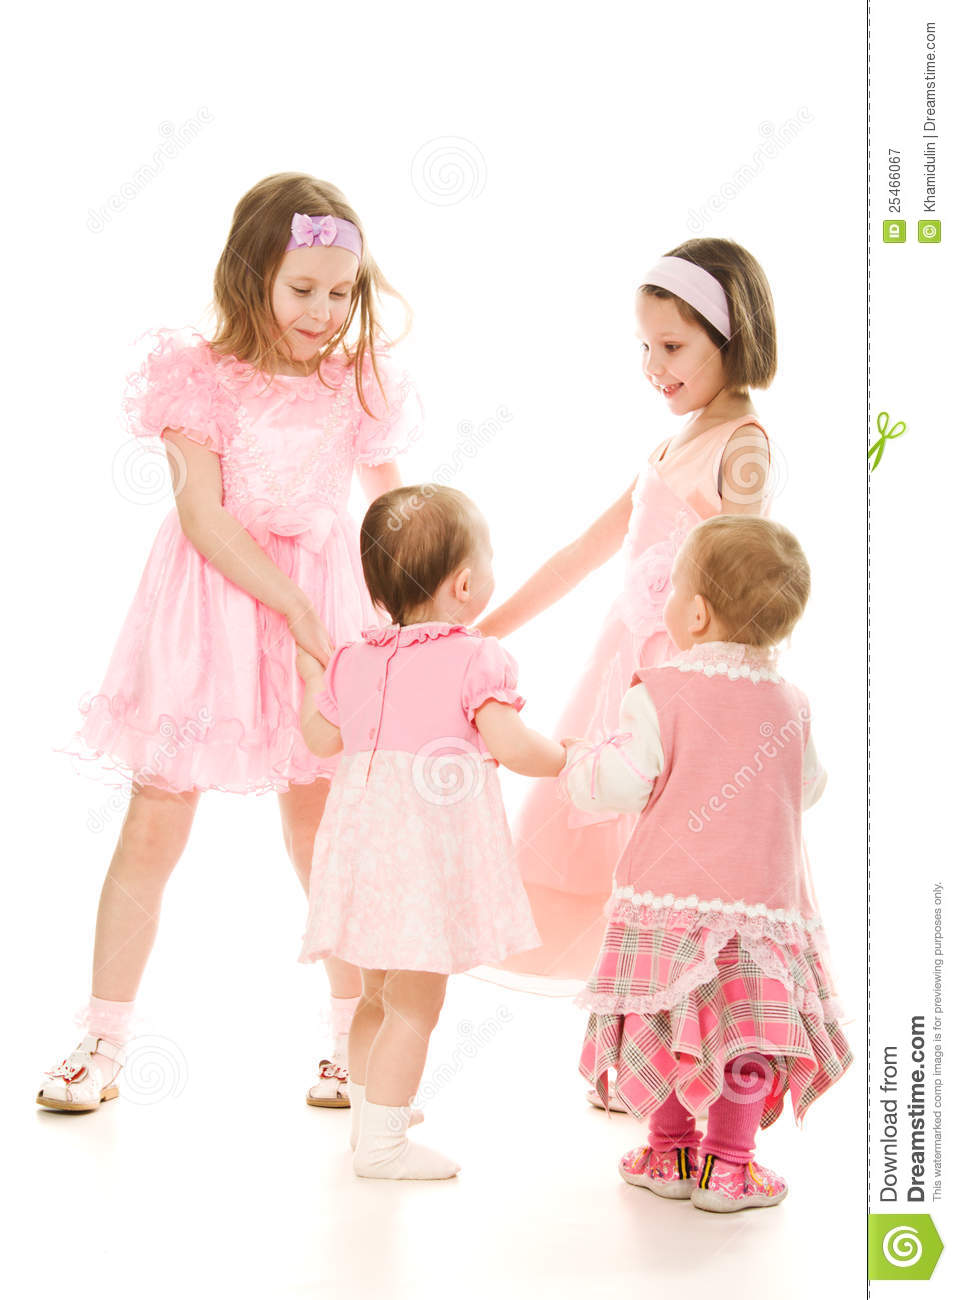 Four friends in a pink dress plays